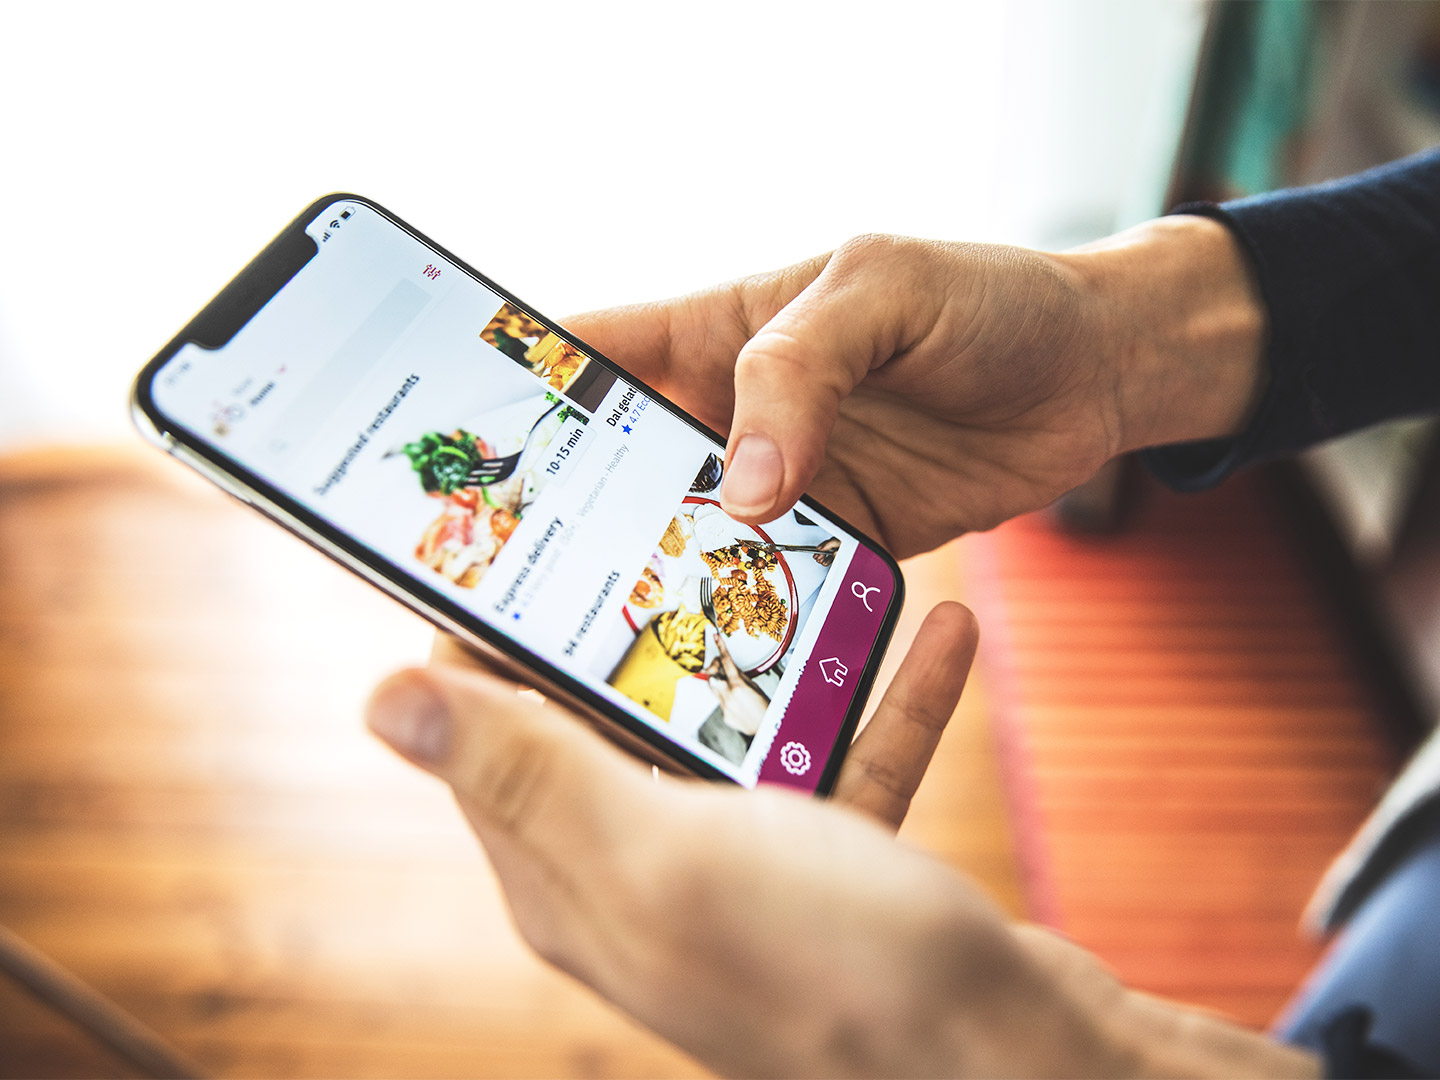 Close up image of caucasian hands scrolling through a food delivery app